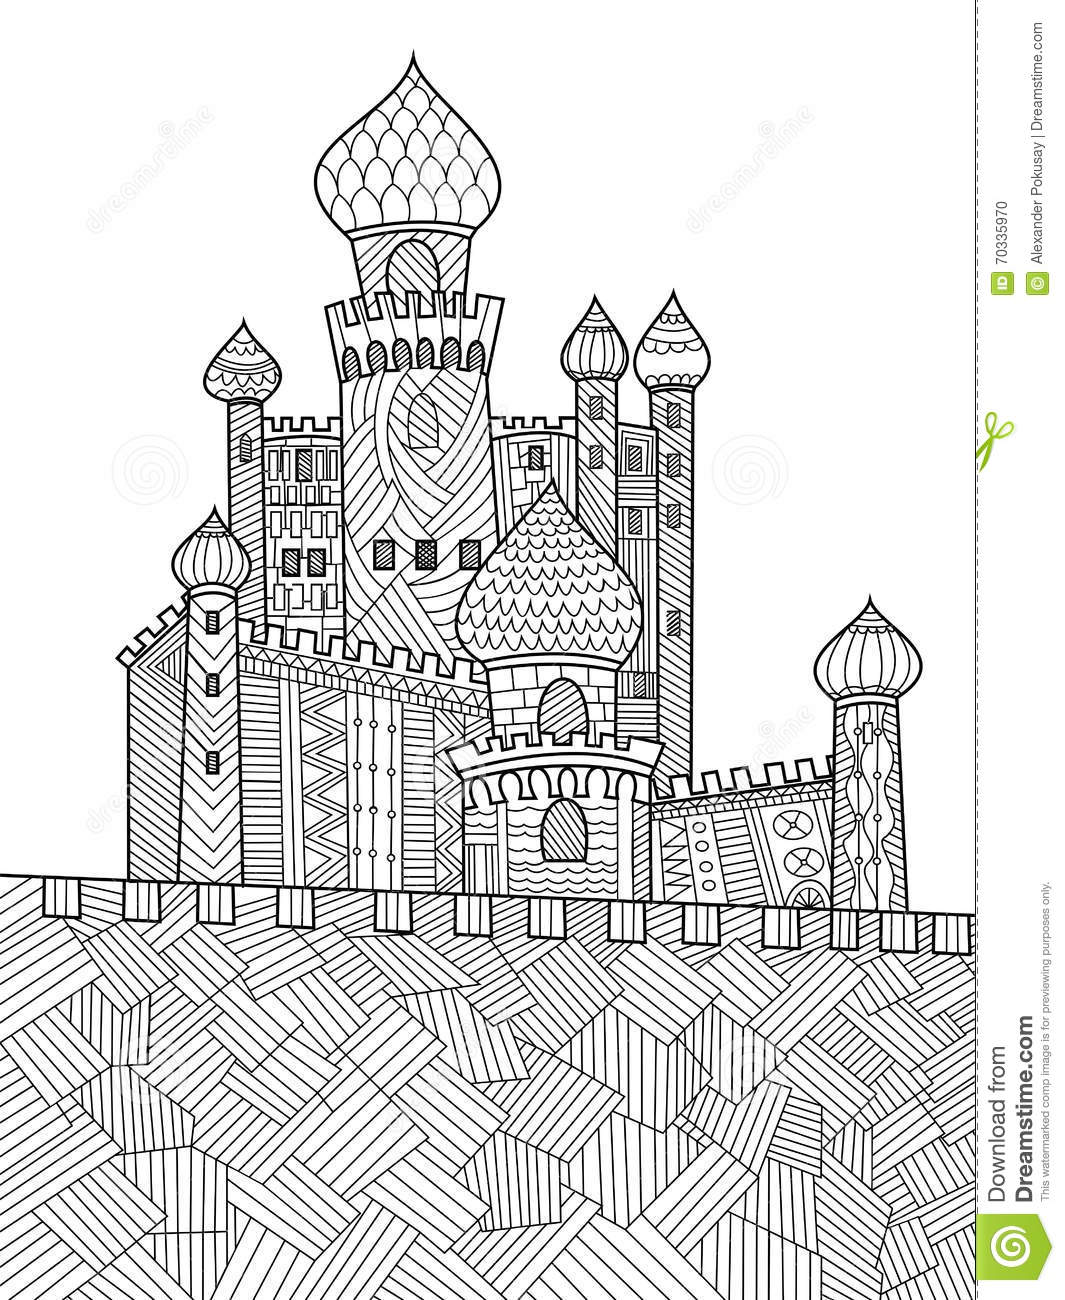 Coloring book landmark for adults - Medieval Castle Coloring Book For Adults Vector